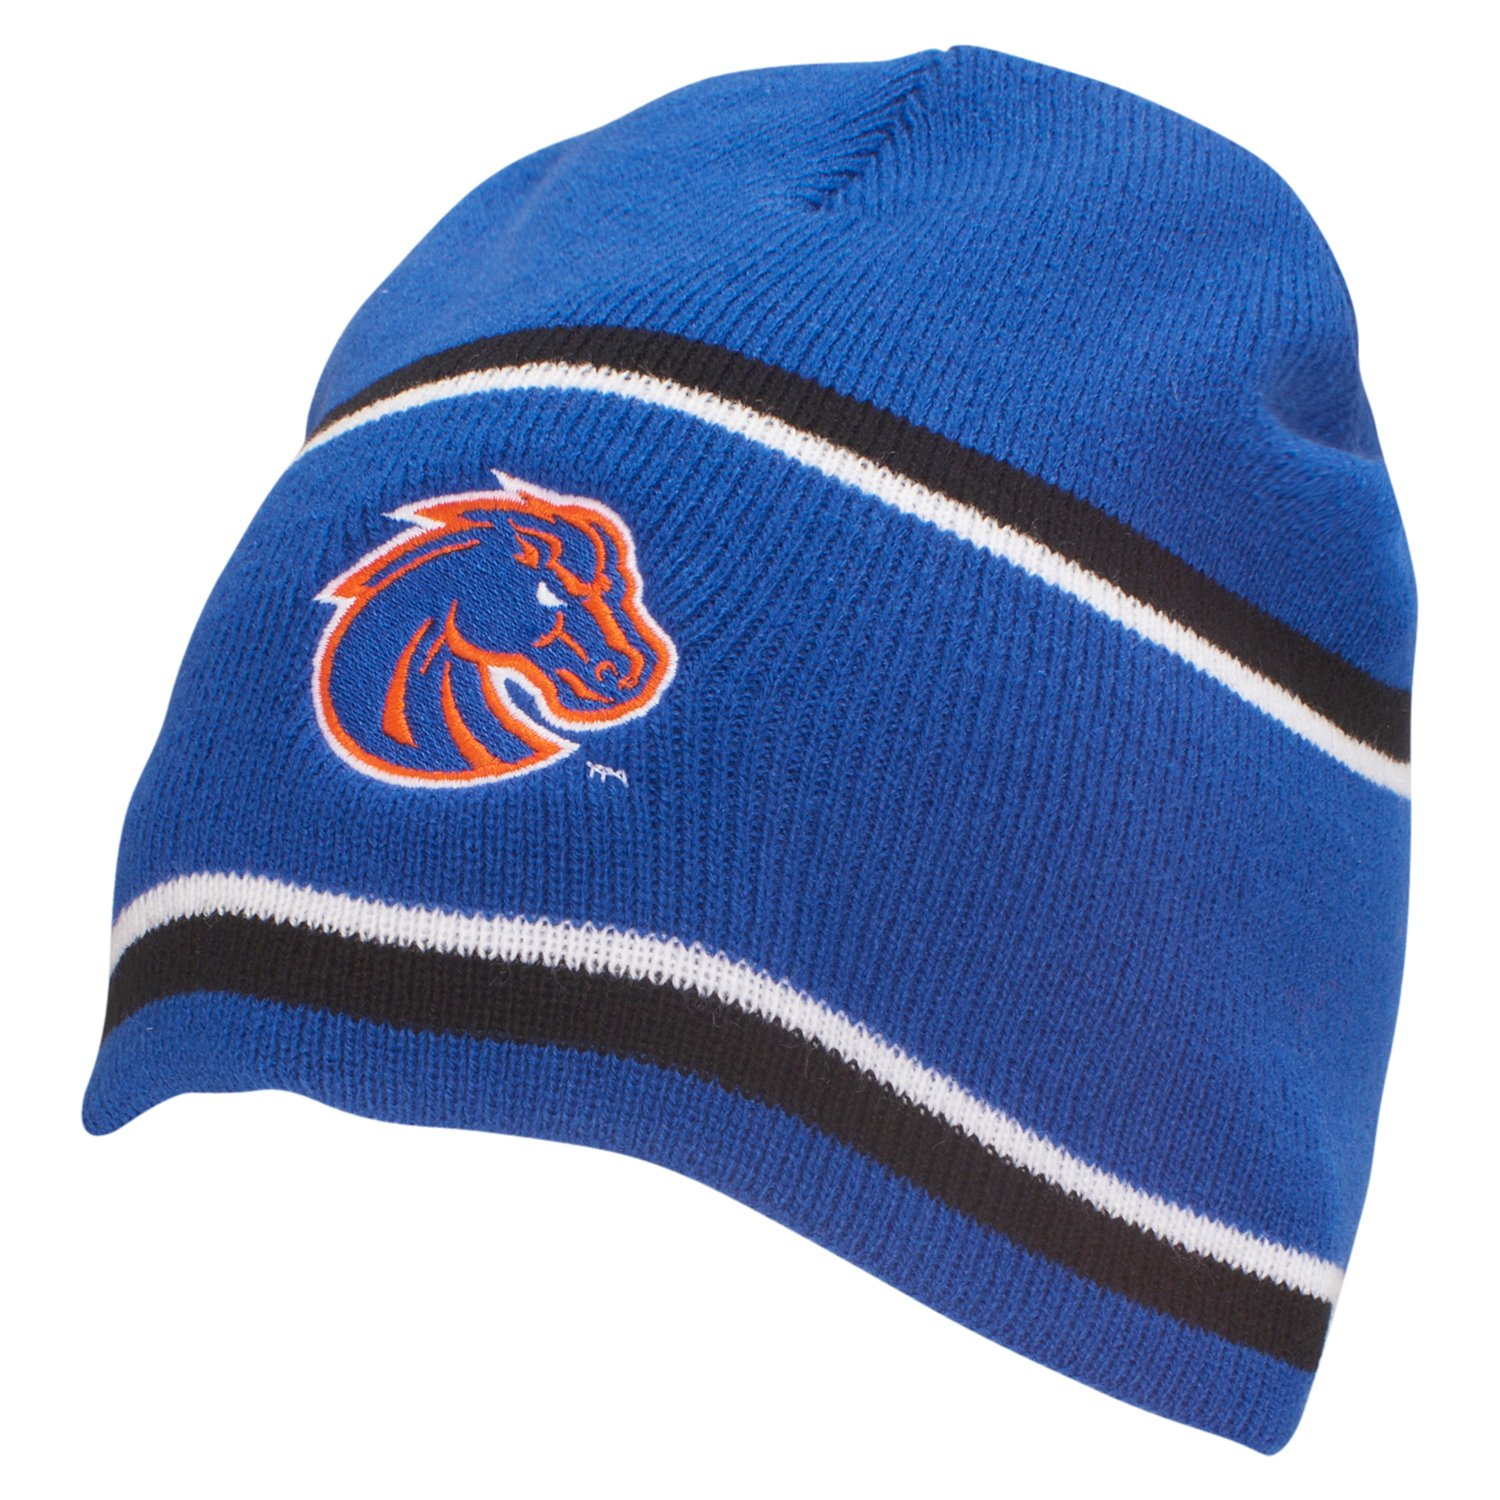 on sale f1831 5aed5 Amazon.com   Ouray Sportswear NCAA North Dakota State Engager Beanie, One  Size, Forest Black White   Sports   Outdoors